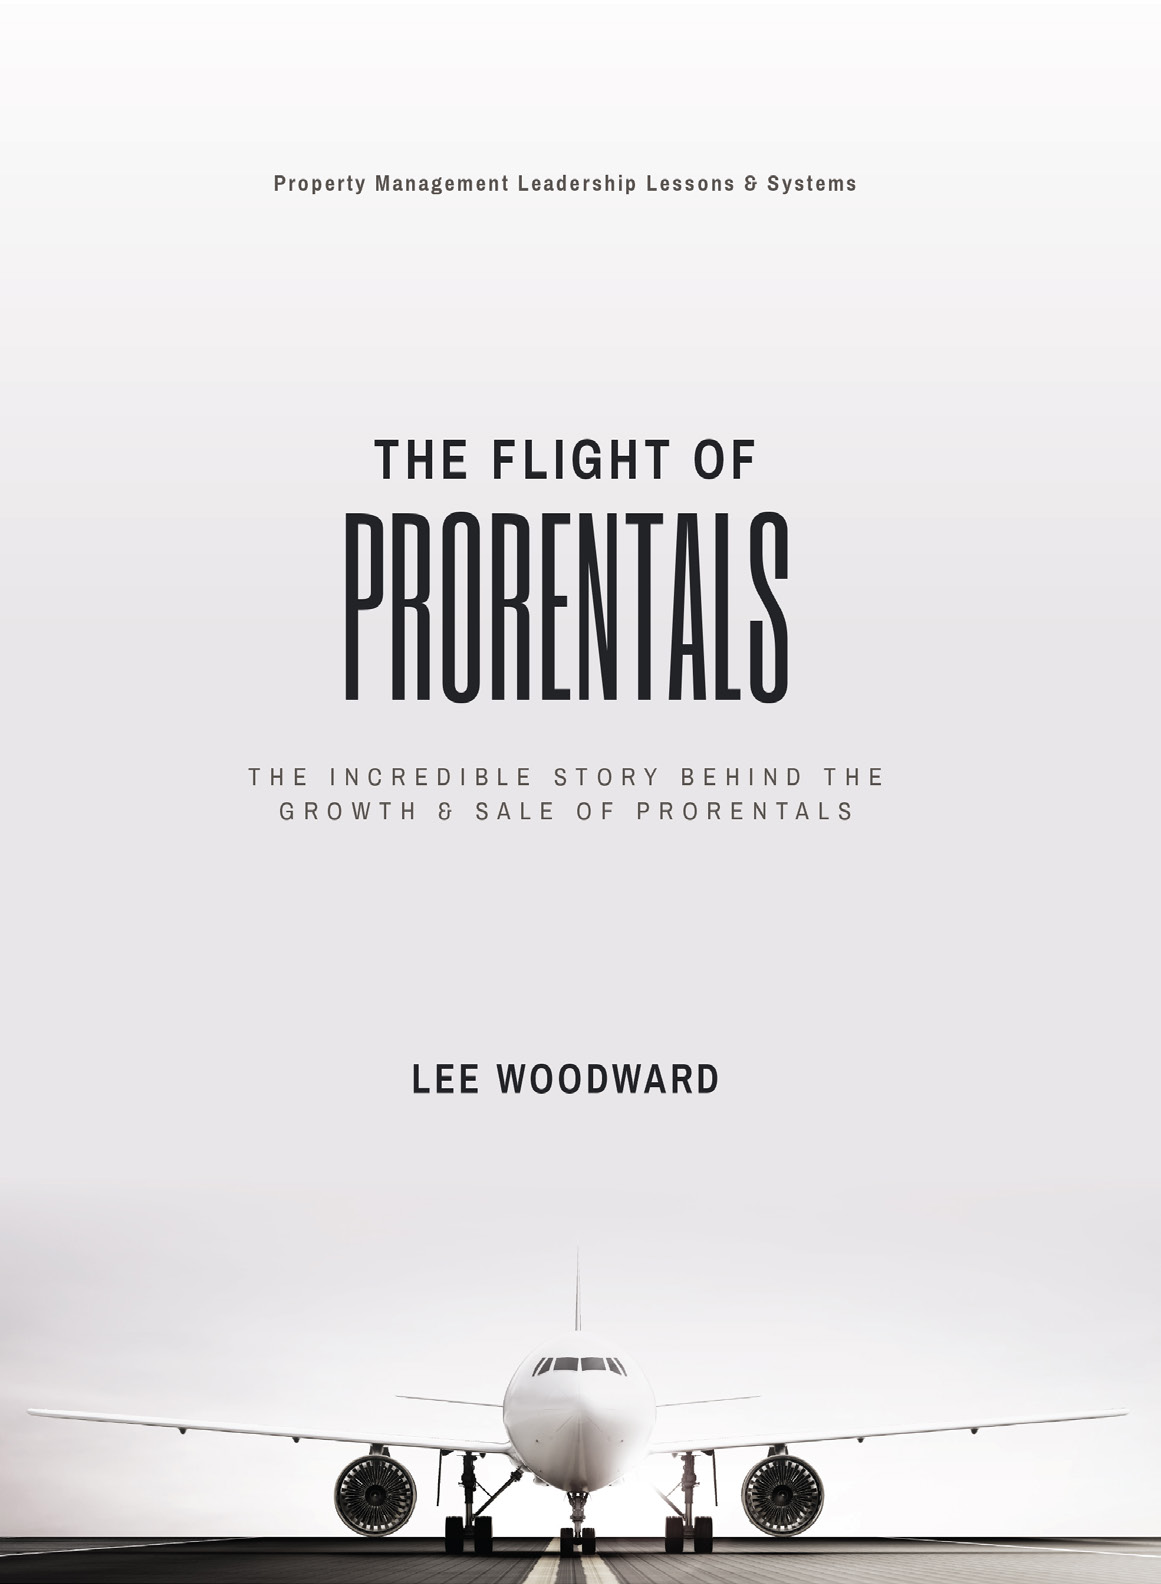 The Flight of Prorentals – the incredible story behind the growth & sale of Prorentals by Lee Woodward